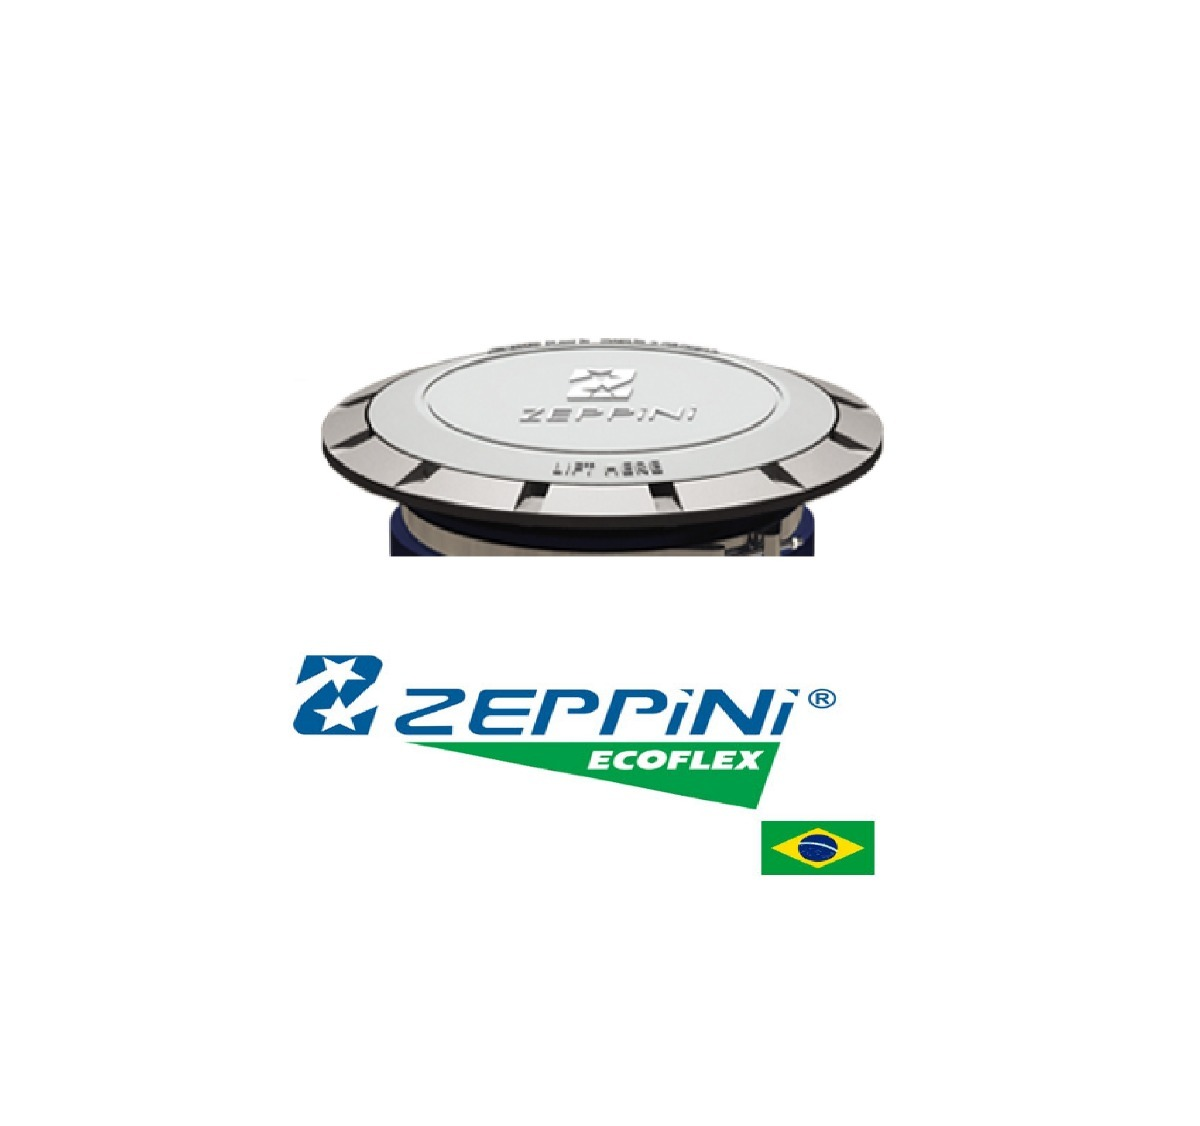 be13175c5 tapa balde antiderrame zeppini - combustible. Cargando zoom.